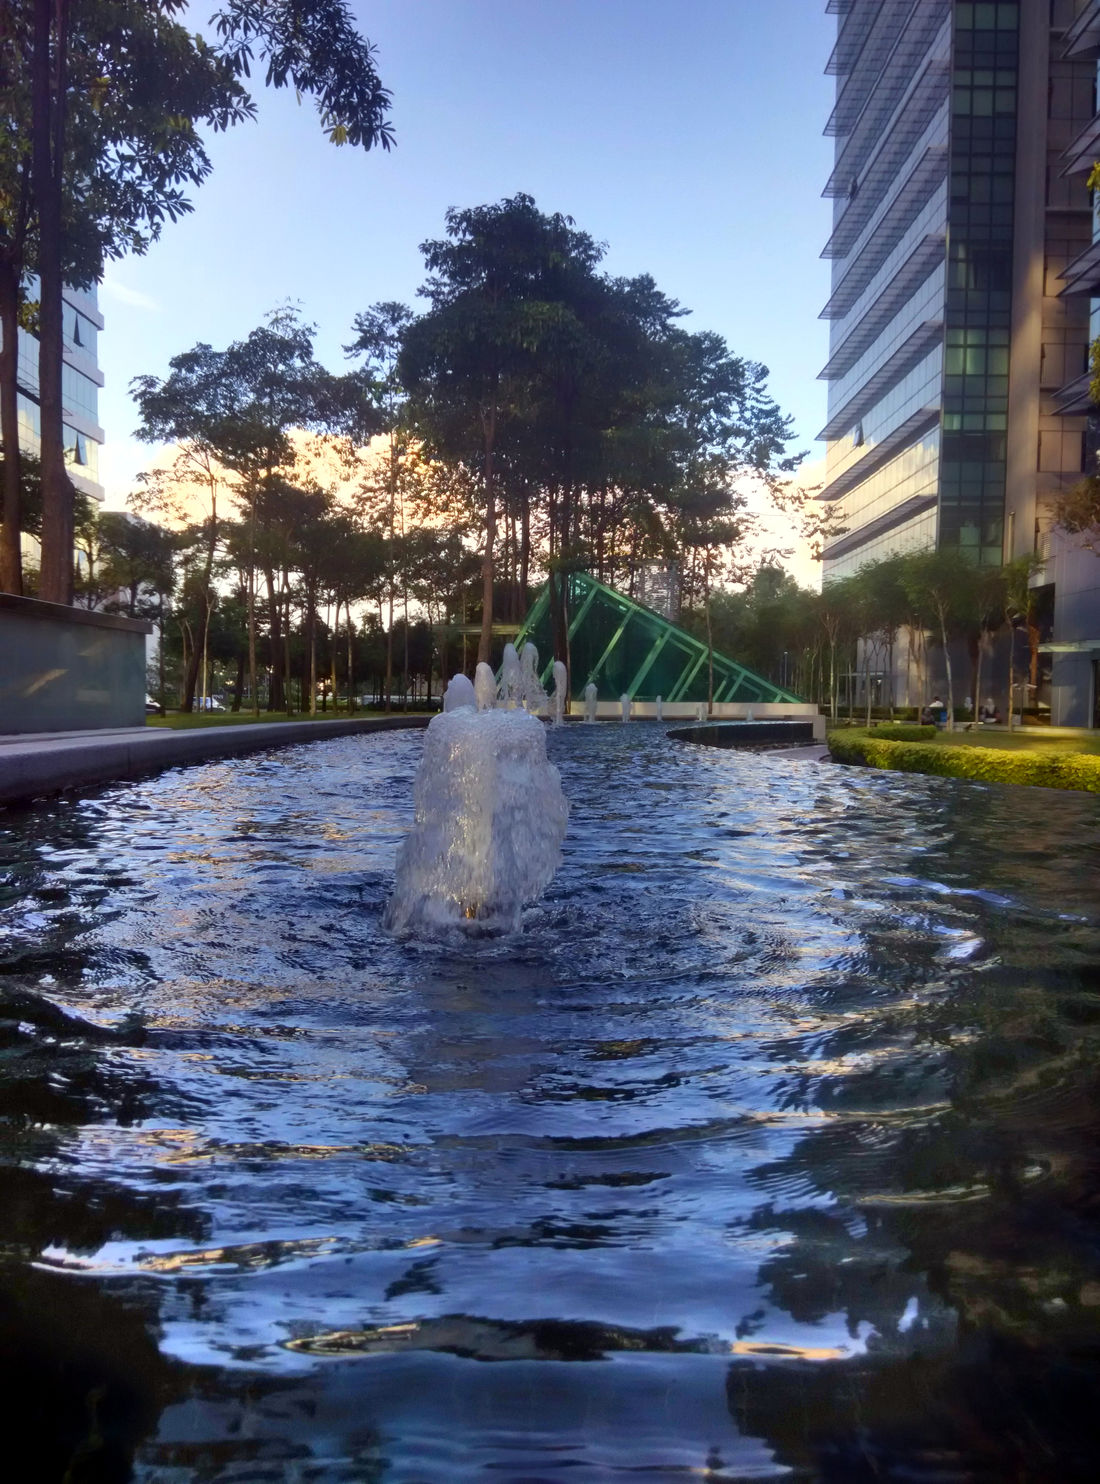 Among the office-blocks there is a small park with jumping water. Architecture Building Exterior Fountain Jumping Water Office Building Outdoors Park Water Waterfront